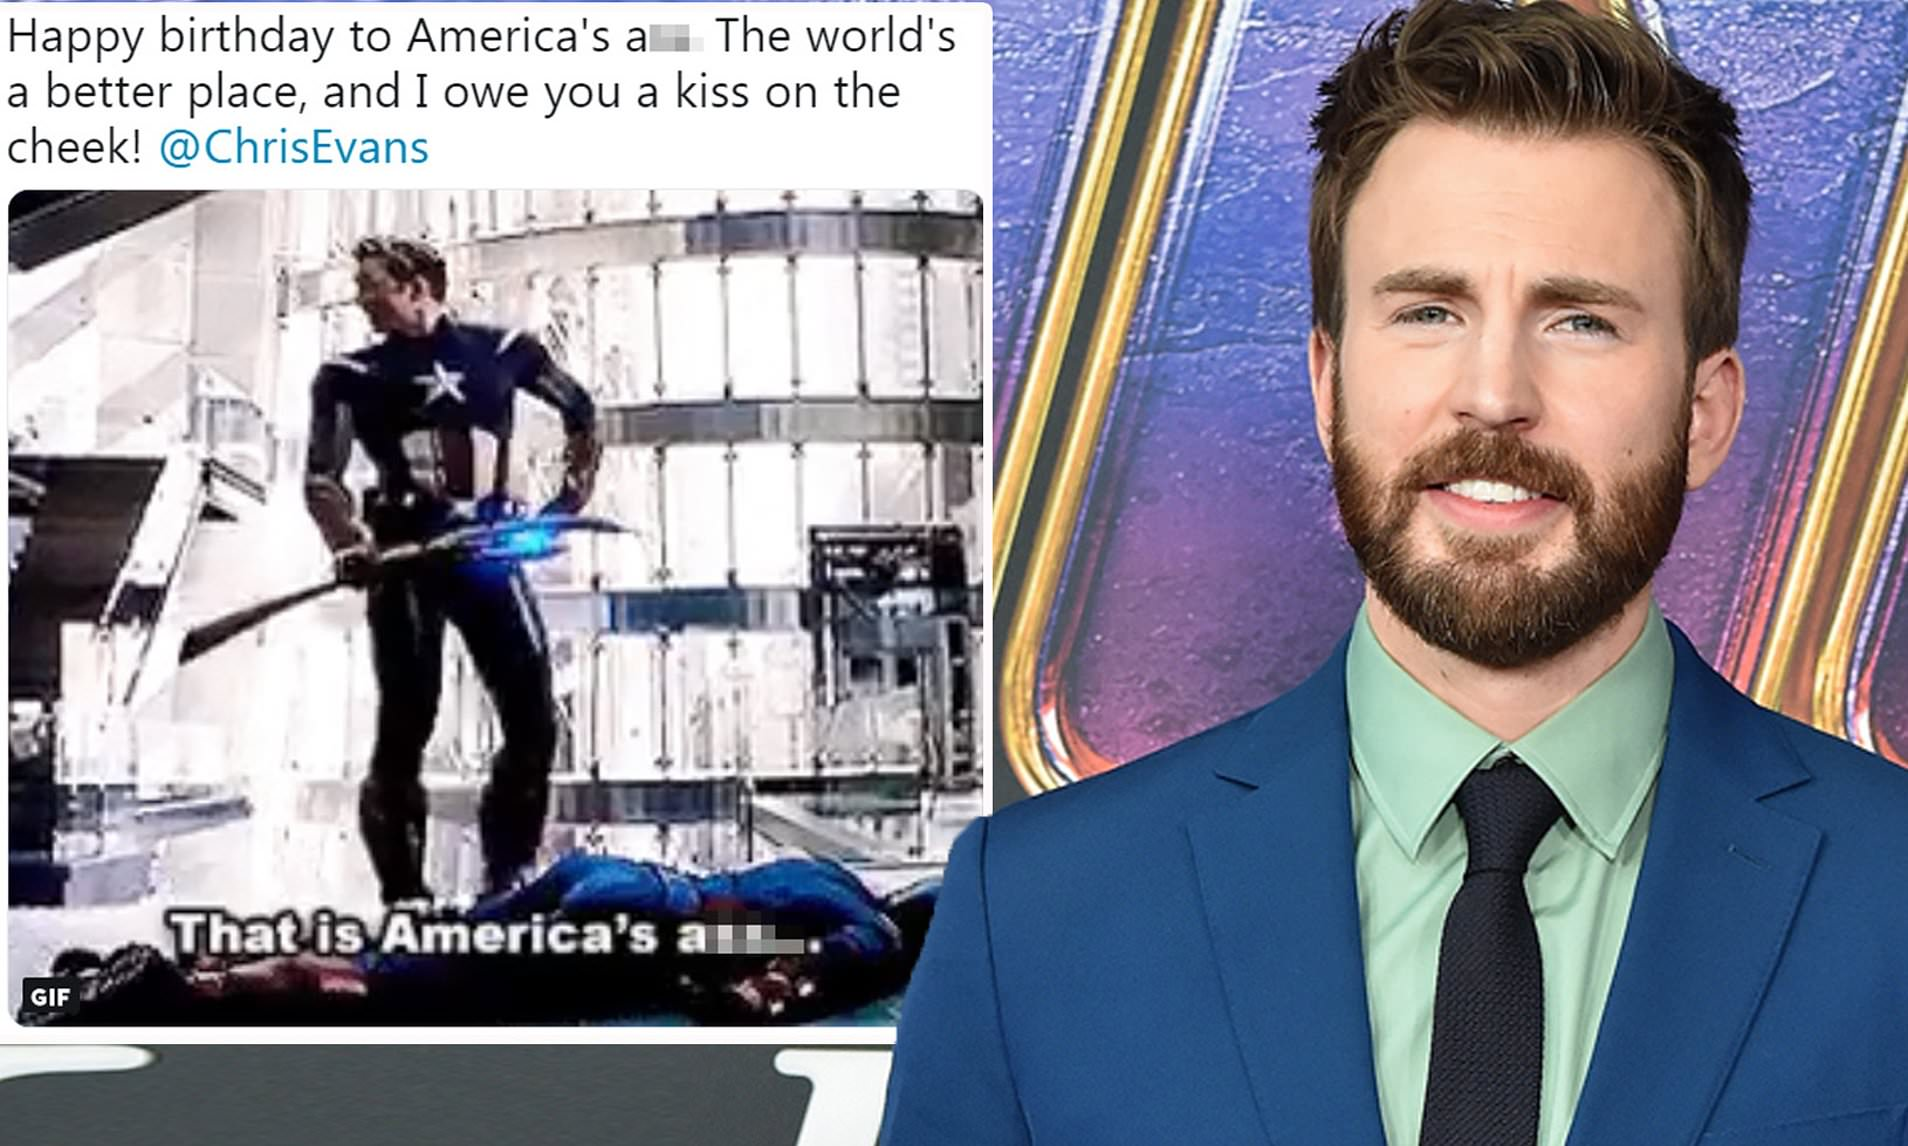 Robert Downey Jr Wishes Chris Evans A Happy Birthday With A